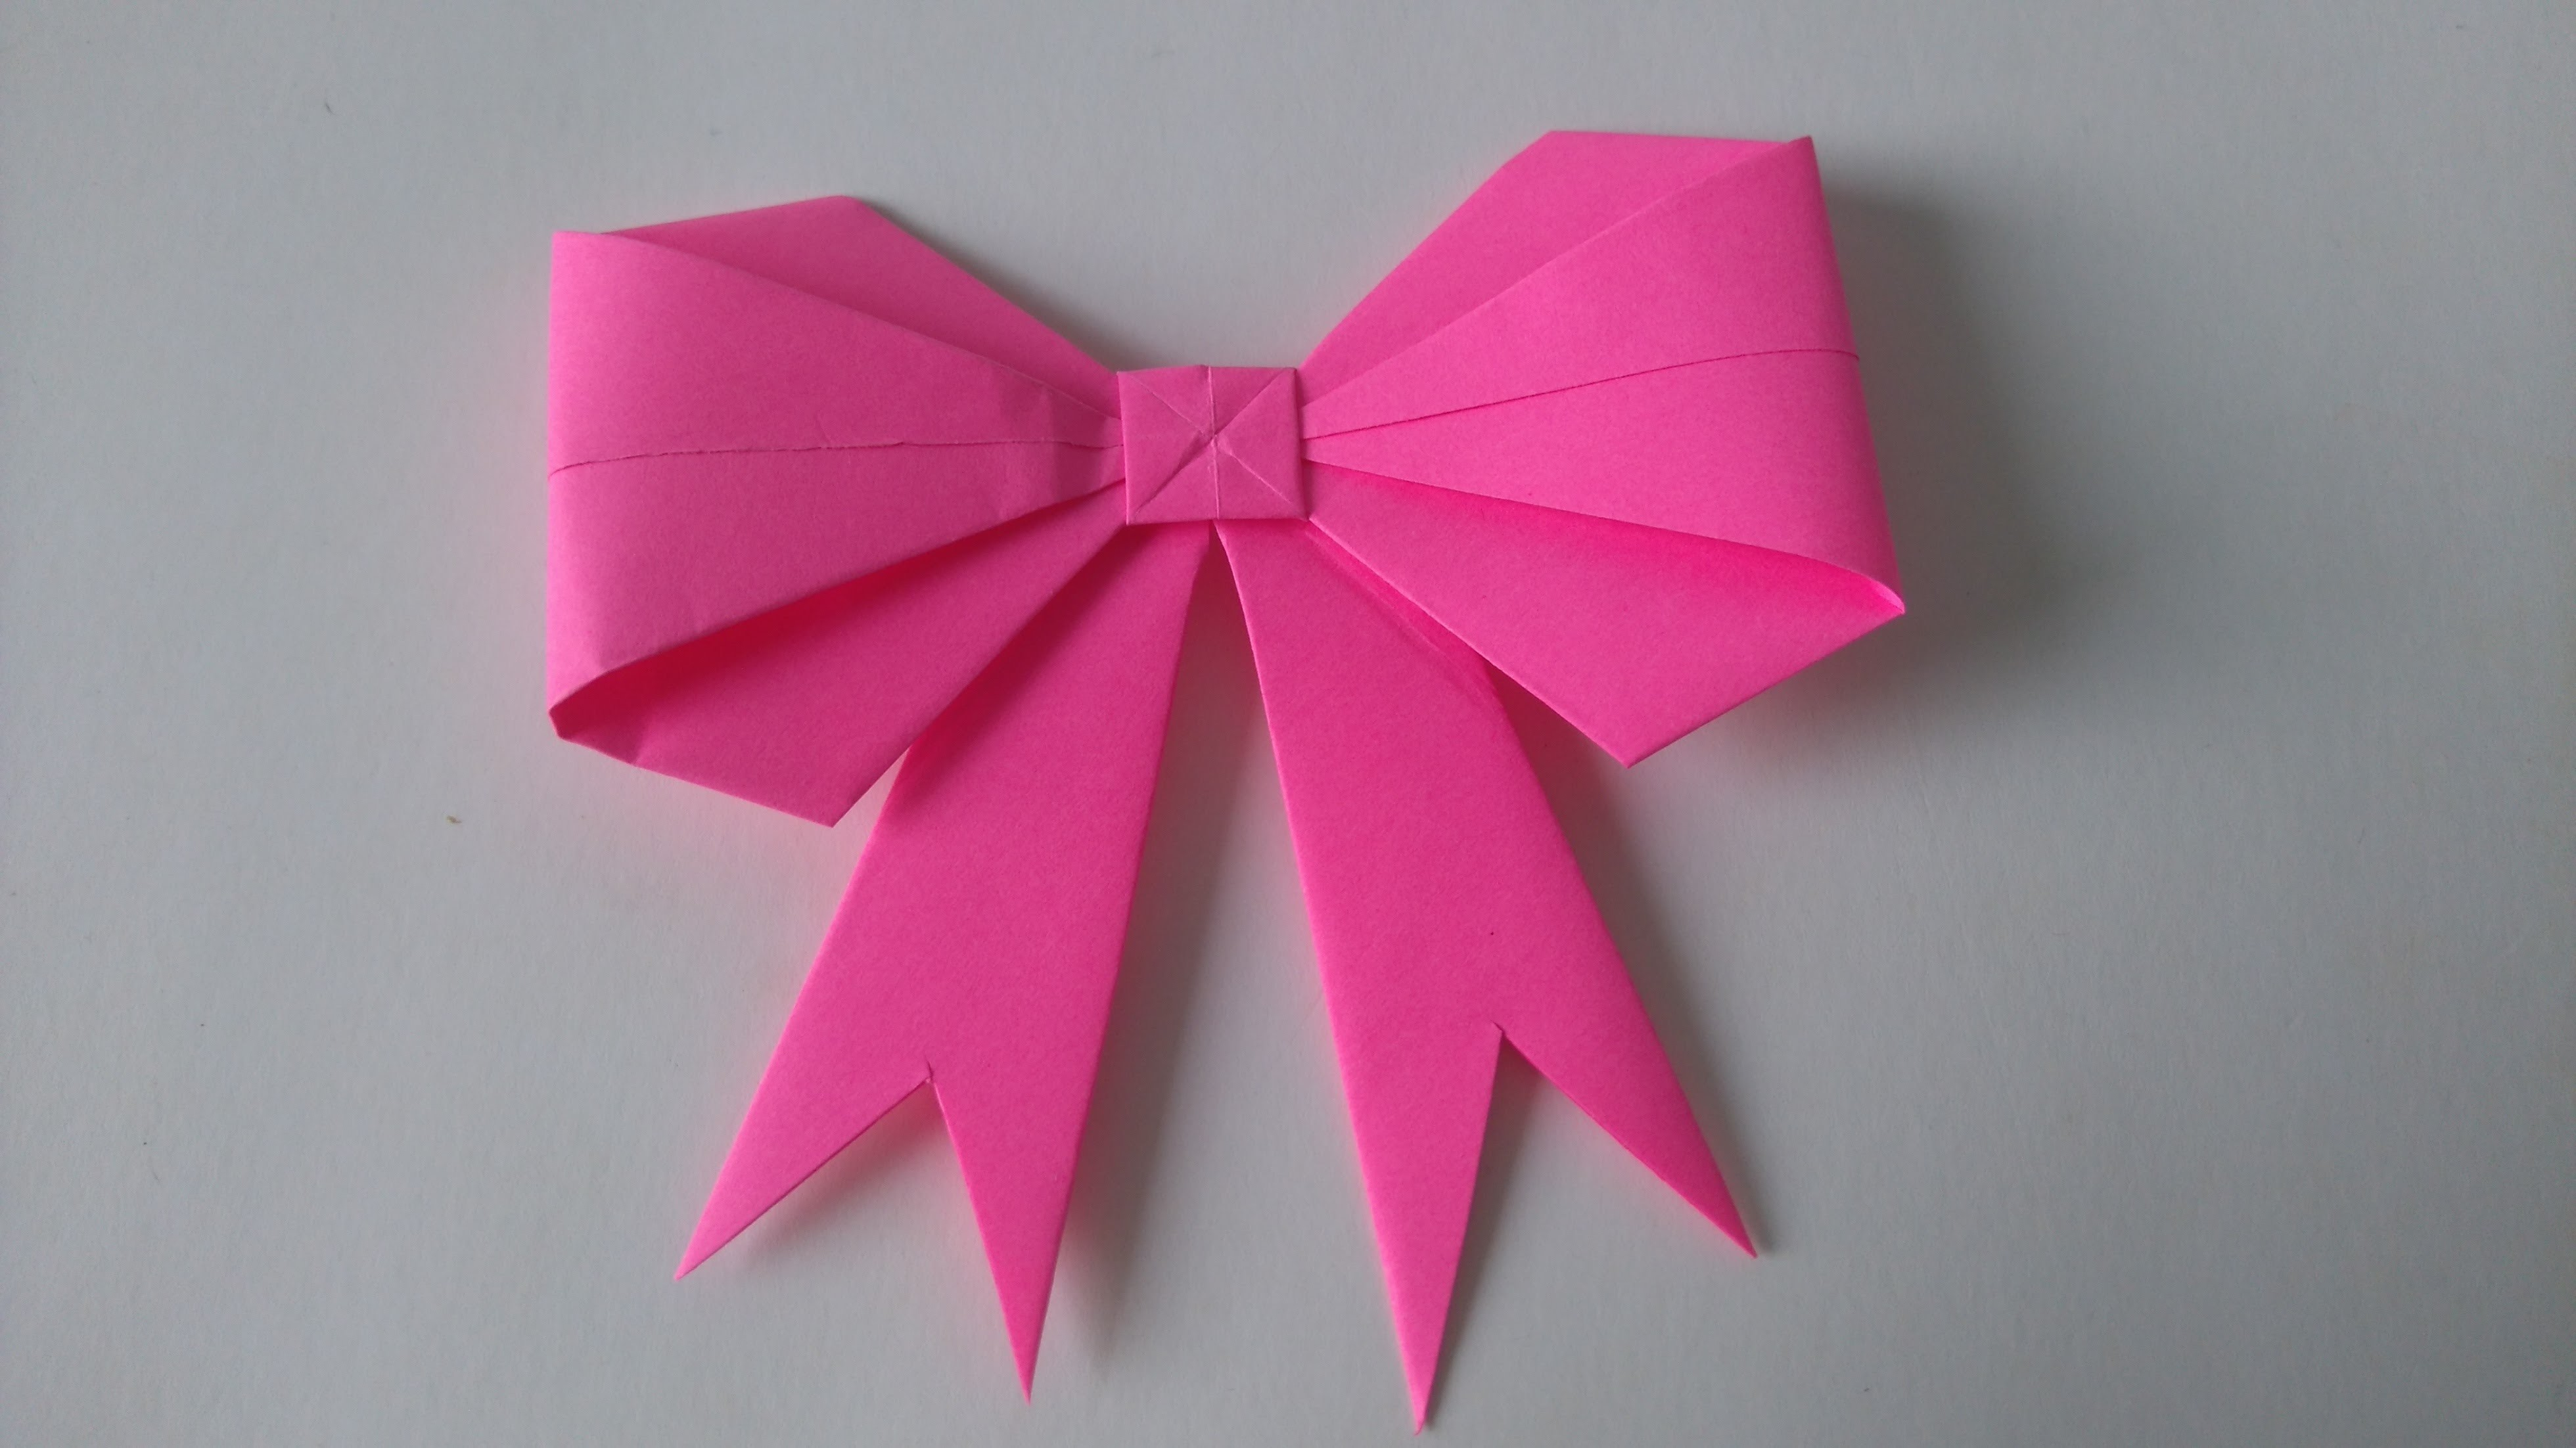 Origami Toys - How to fold an Origami BowRibbon